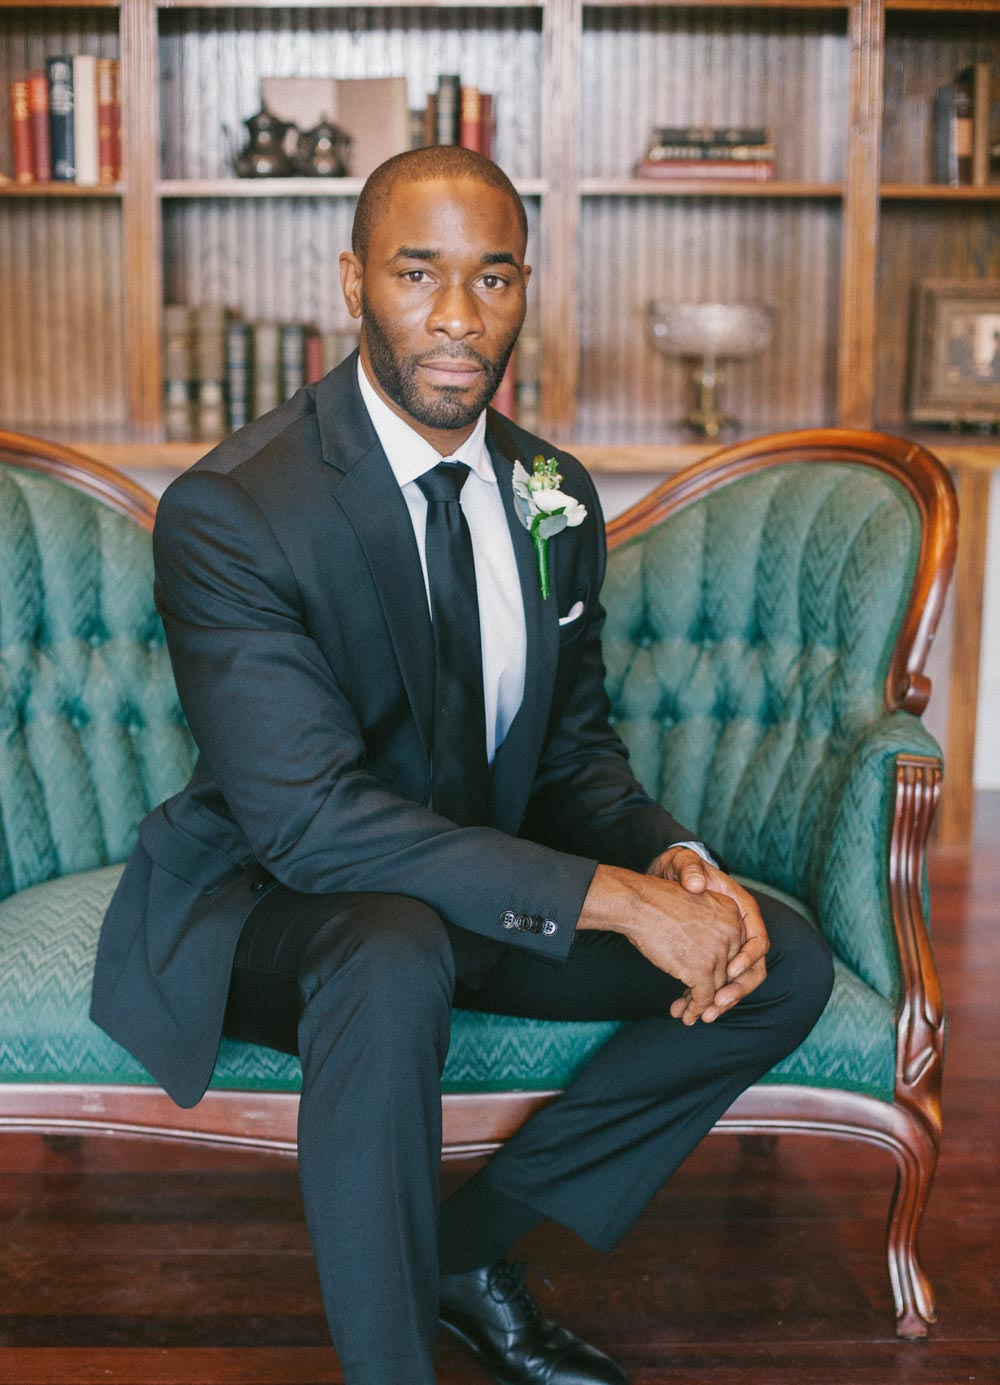 groom portrait on emerald chair